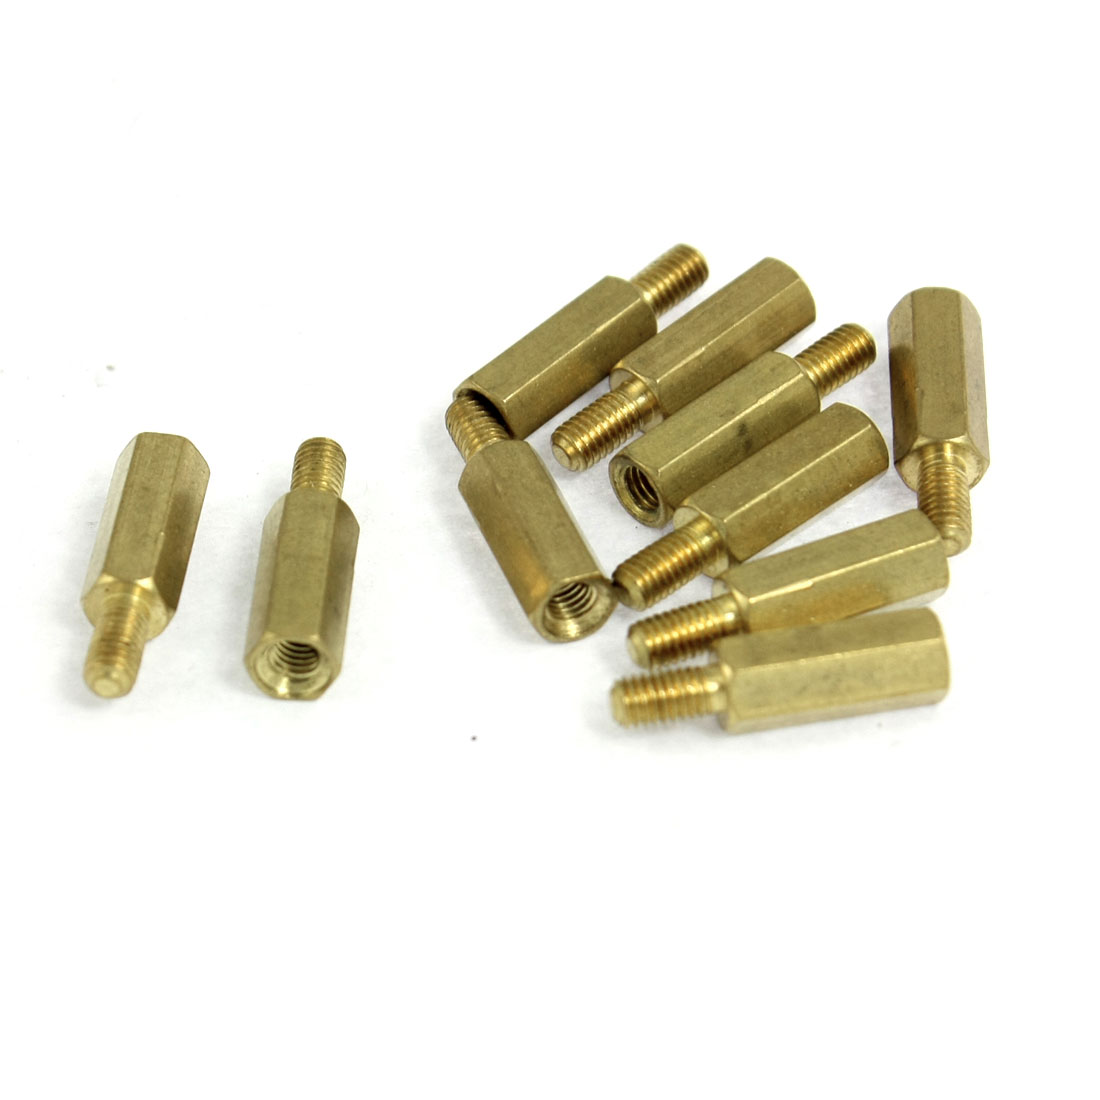 10 Pcs Brass PCB Standoffs Hexagonal Spacers 2.8mm Male x 2.6mm Female